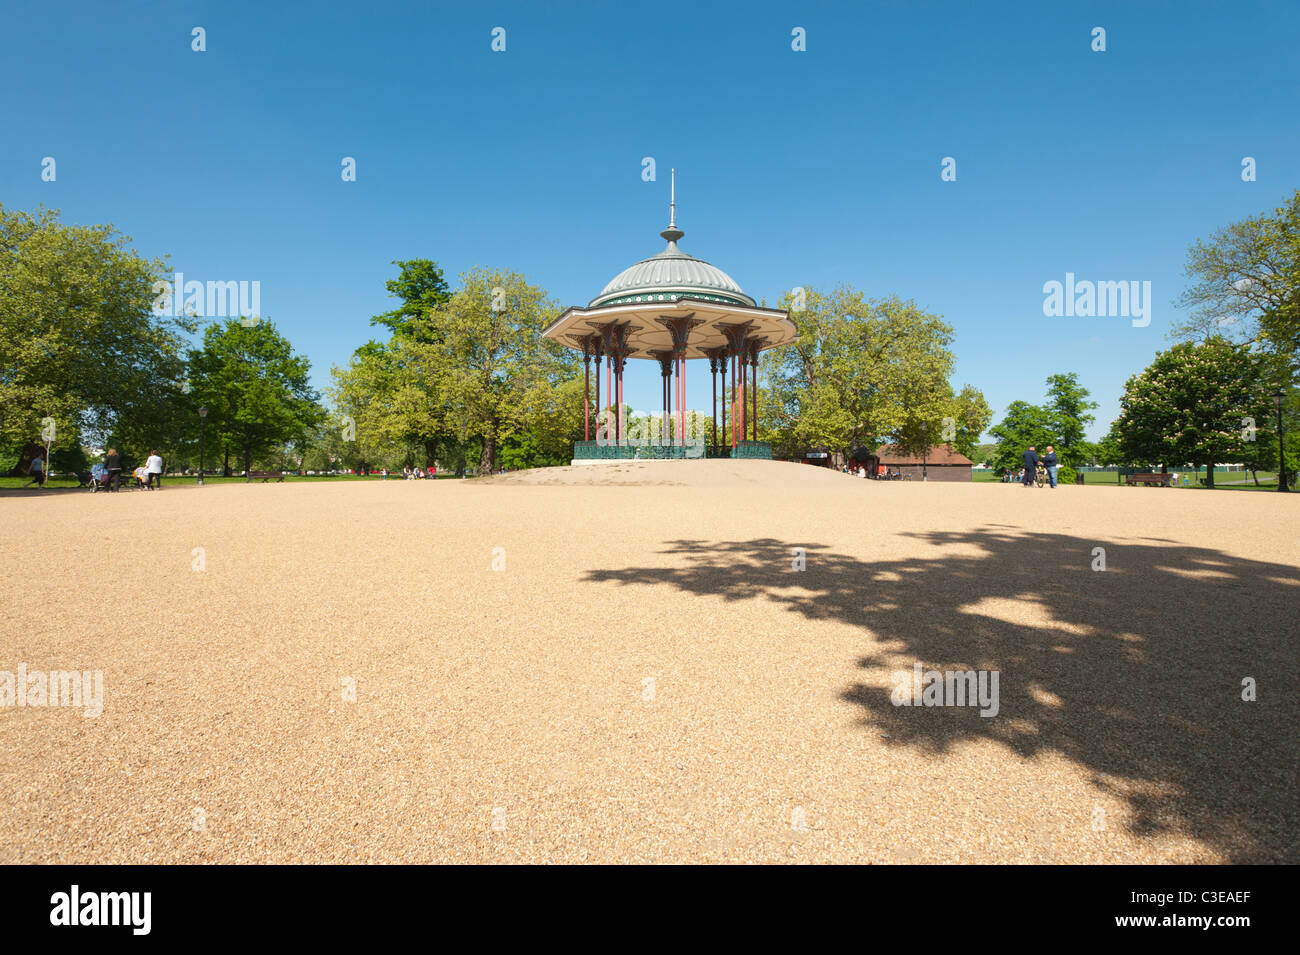 The Bandstand in the middle of Clapham Common, Lambeth, London, England, UK. Stock Photo